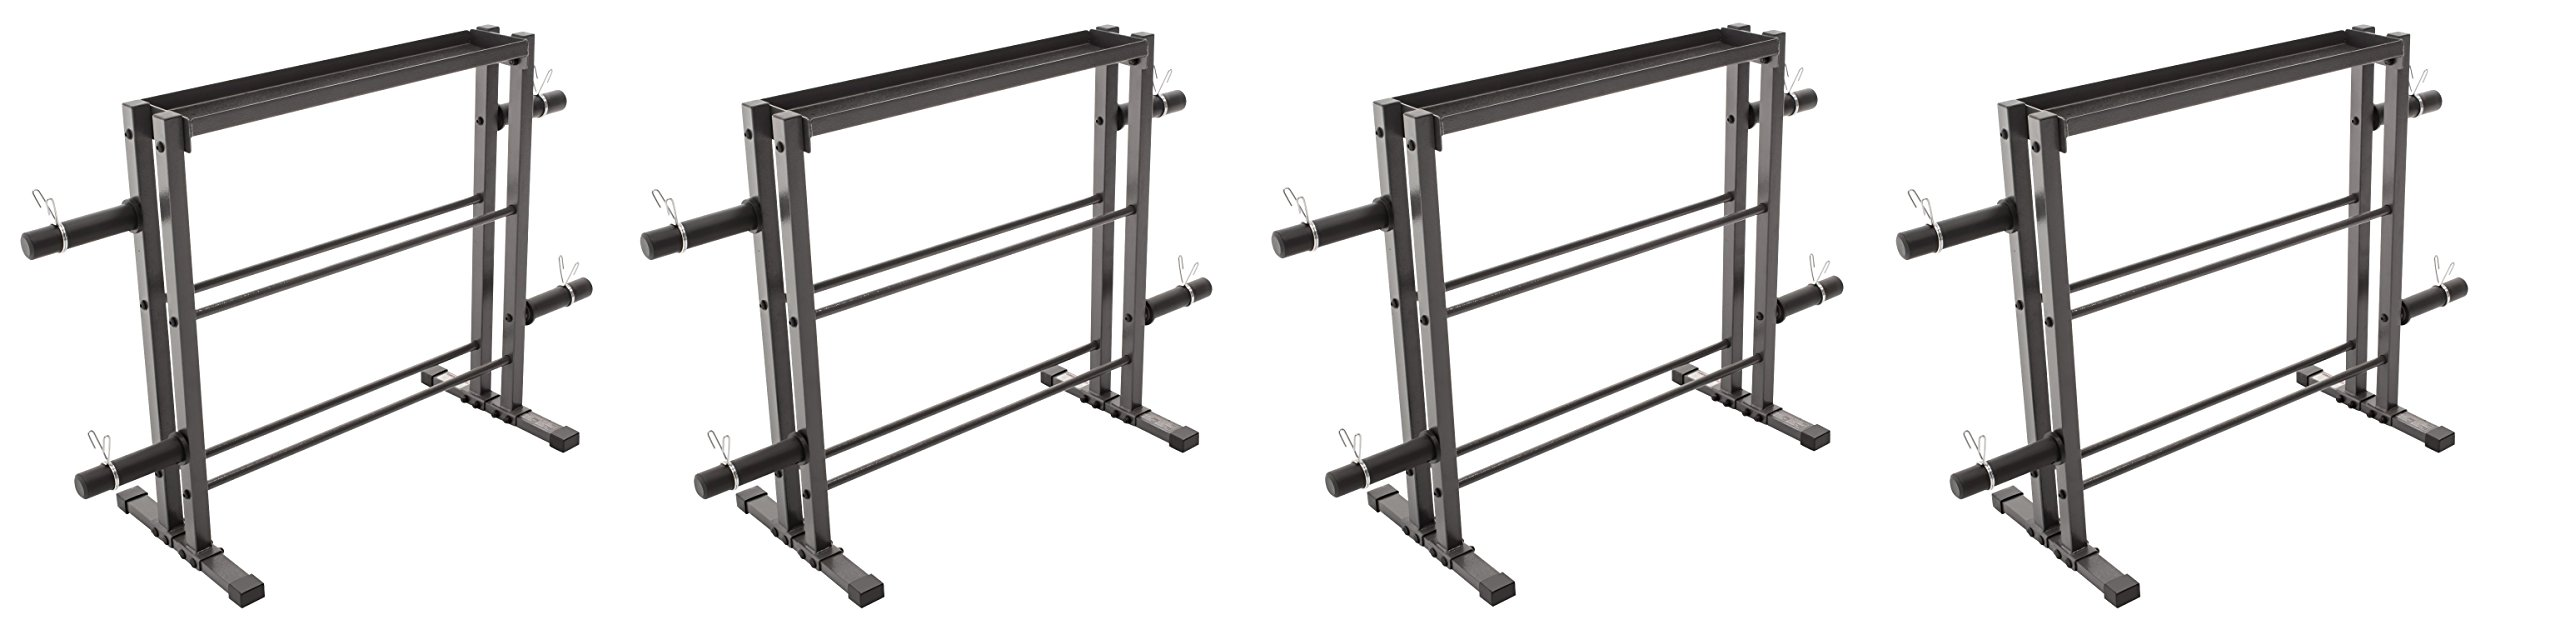 Marcy Combo Weights Storage Rack for Dumbbells, Kettlebells, and Weight Plates DBR-0117 (Pack of 4)